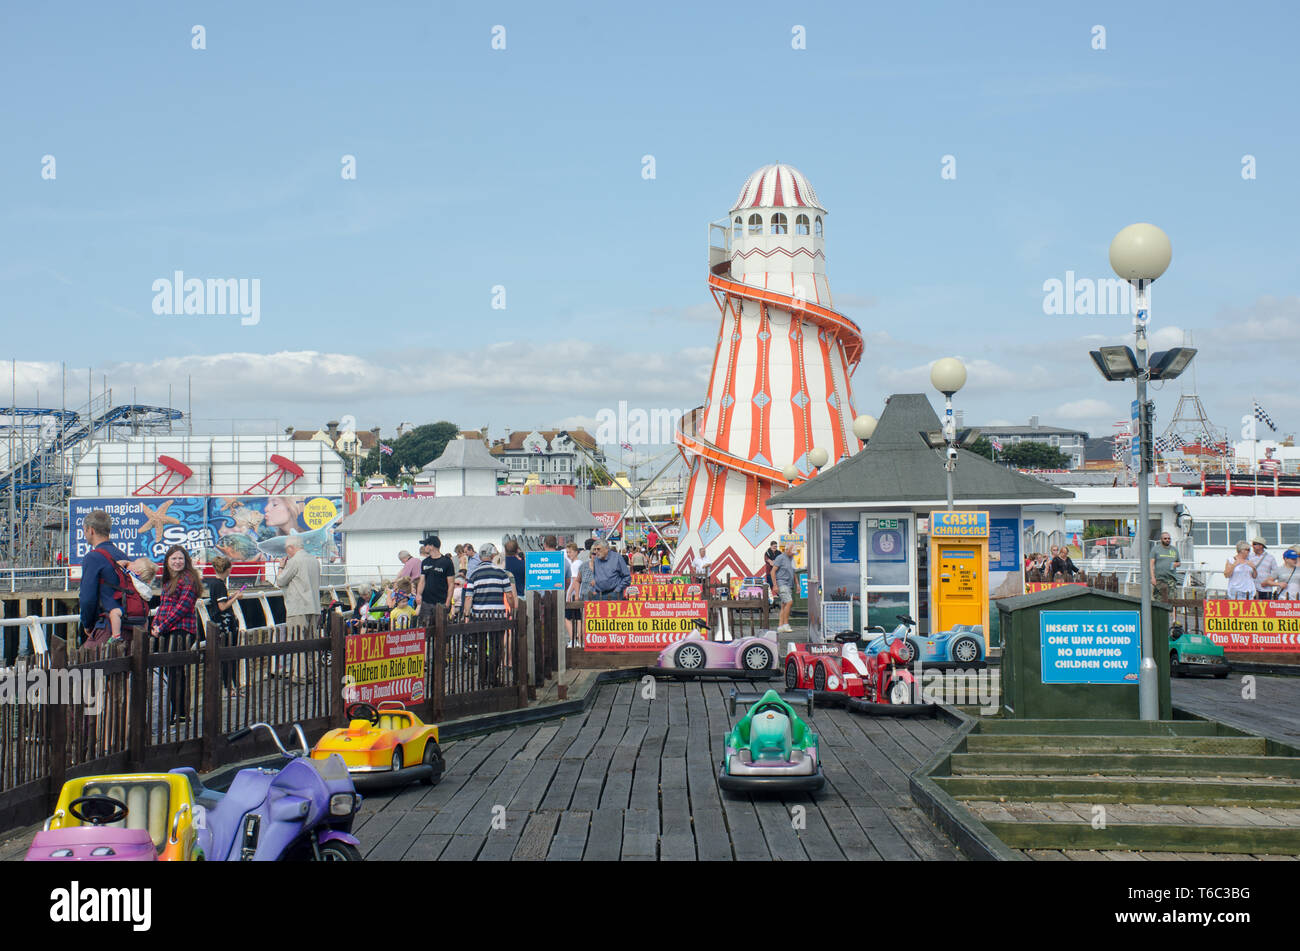 Clacton holiday pier with Helter Skelter - Stock Image